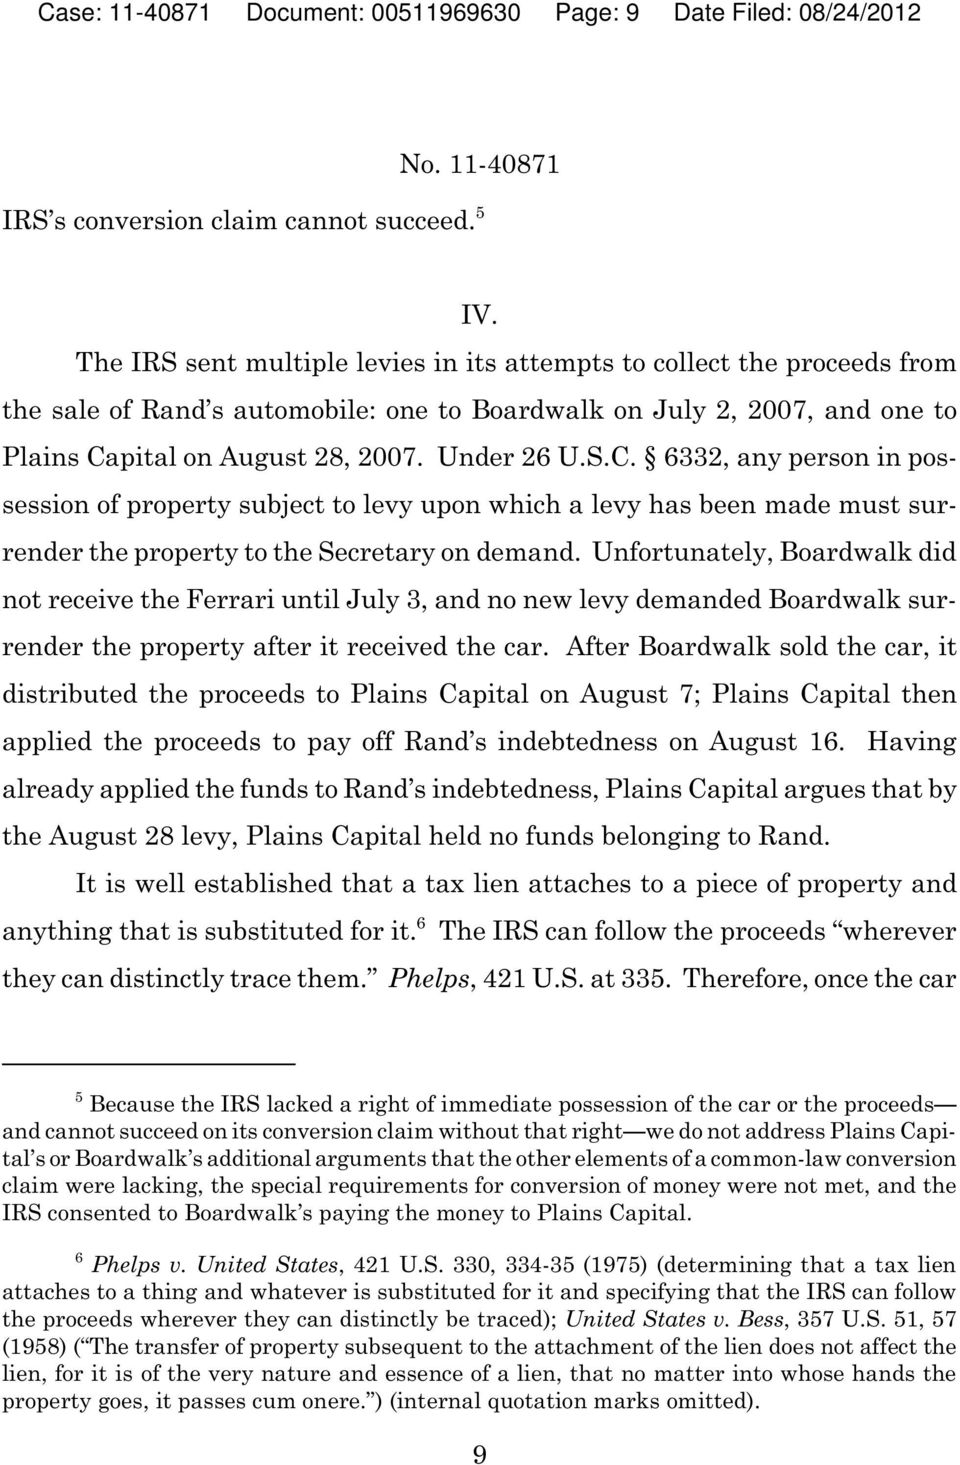 pital on August 28, 2007. Under 26 U.S.C. 6332, any person in possession of property subject to levy upon which a levy has been made must surrender the property to the Secretary on demand.